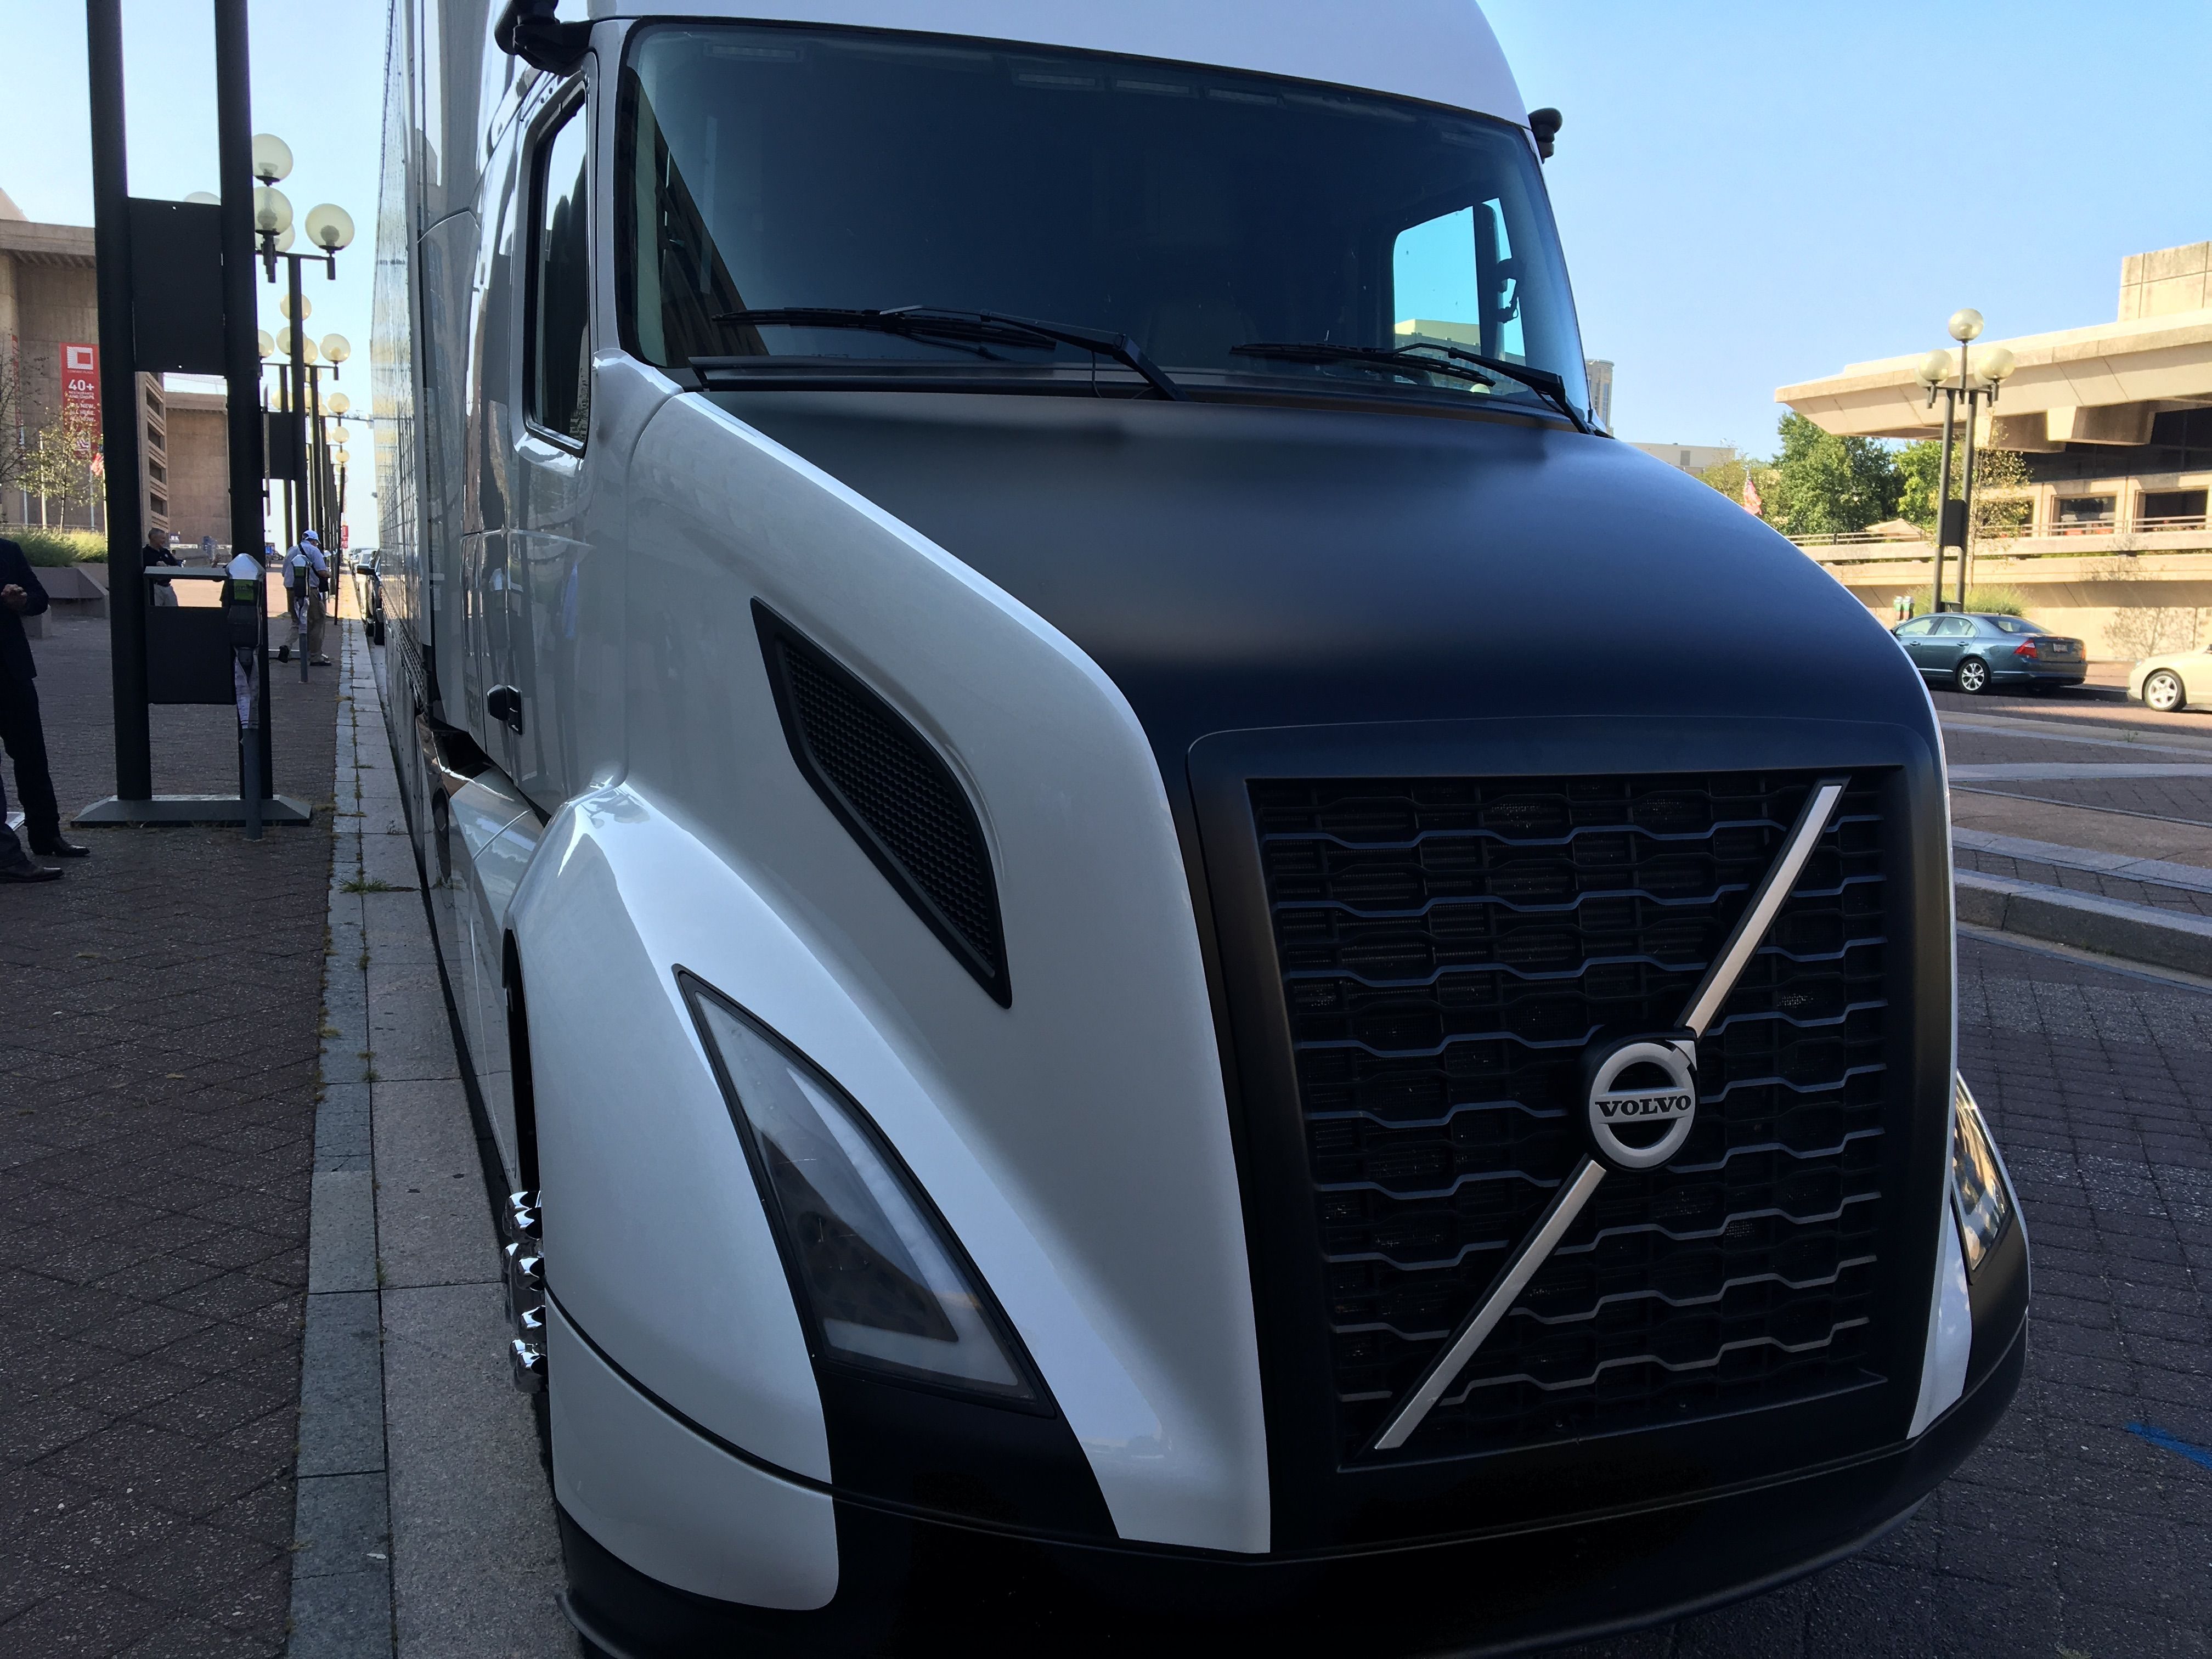 2018 volvo rig. fine rig volvo shows off its supertruck achieves 88 freight efficiency boost for 2018 volvo rig